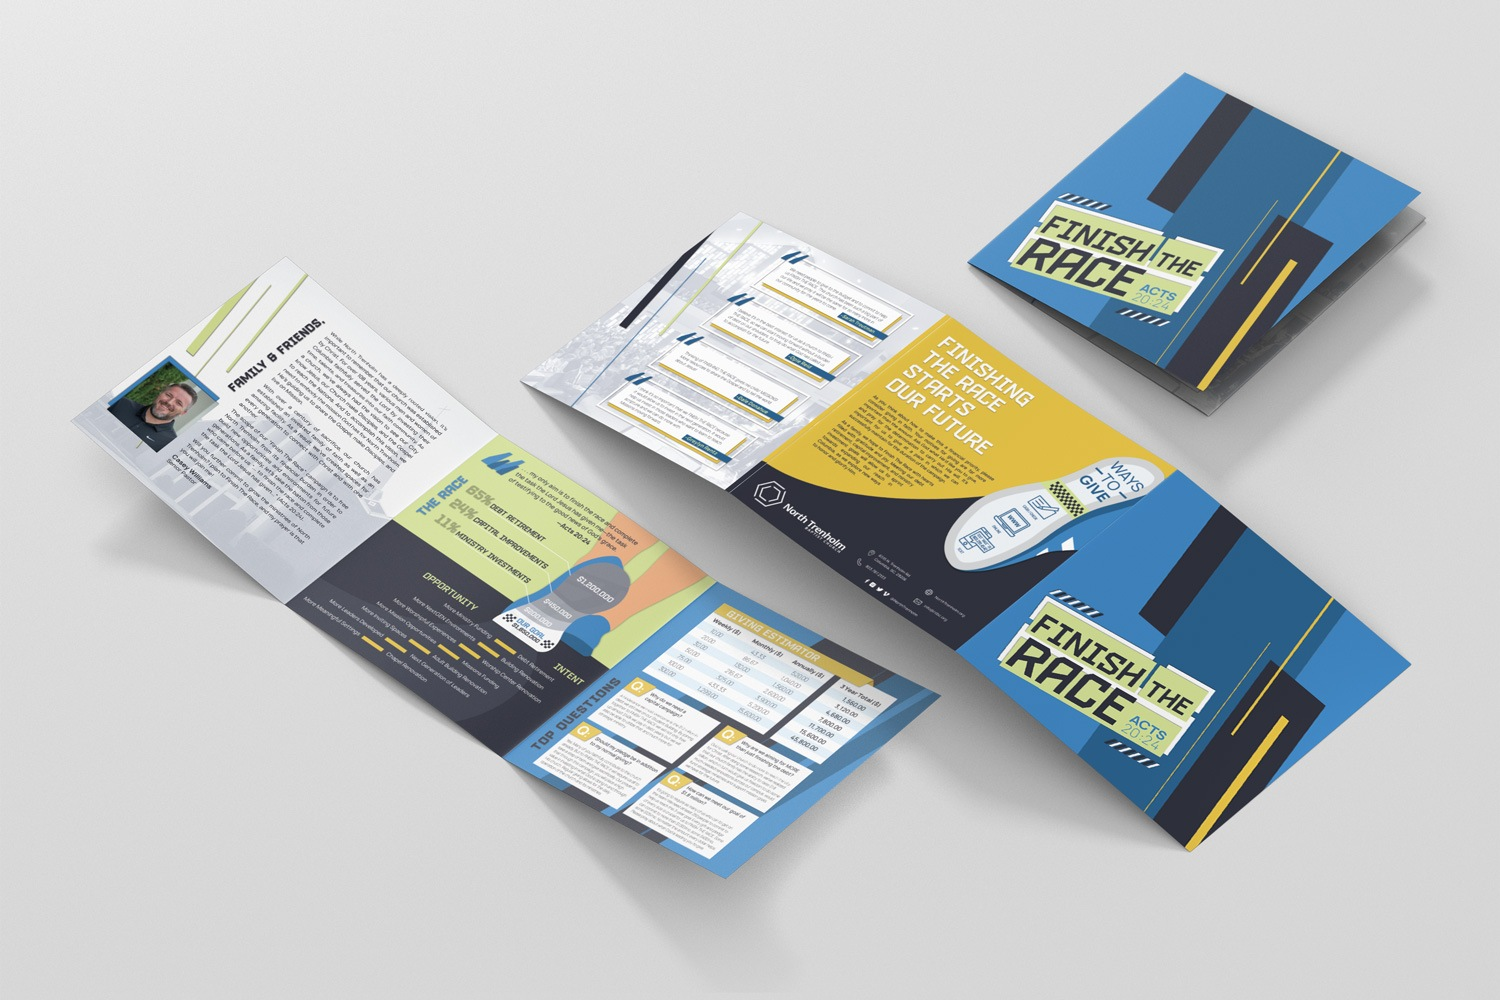 Baptist church capital campaign brochures, stewardship them and slogans ideas, template design by abstract union